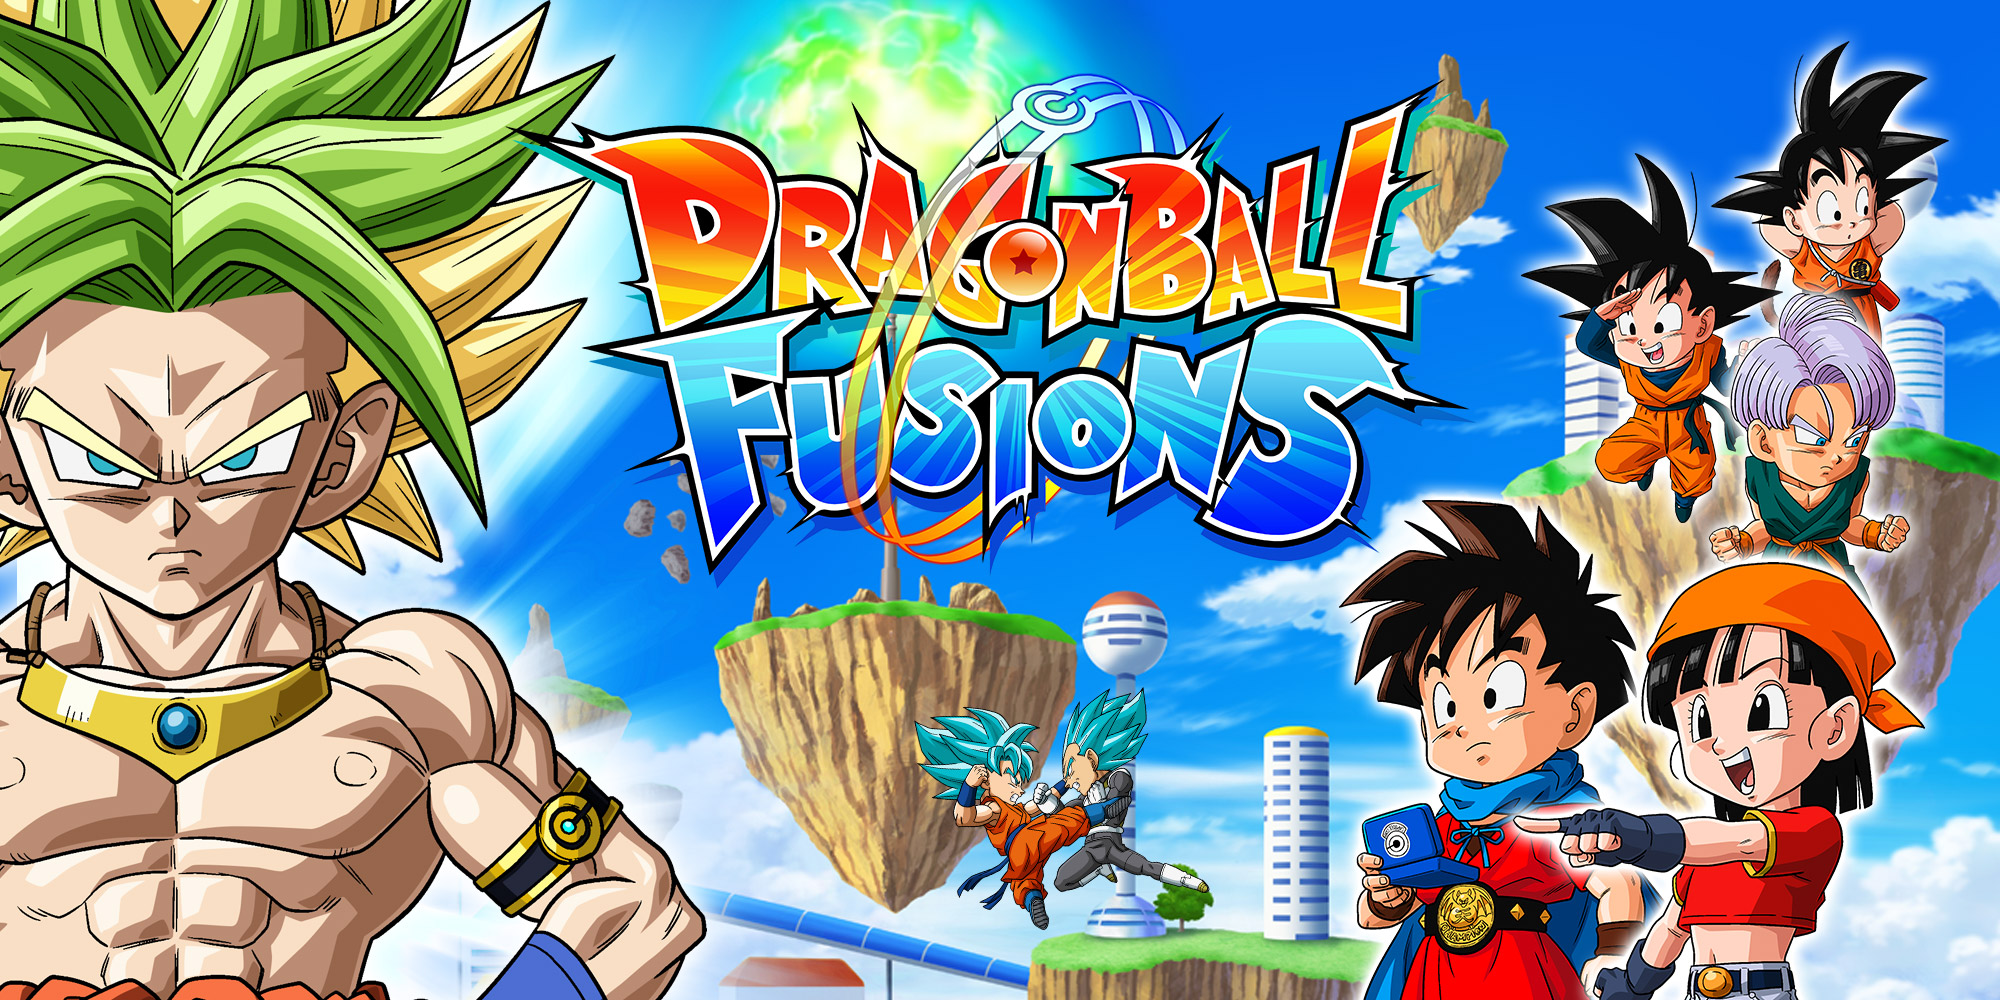 H2x1_3DS_DragonBallFusions.jpg